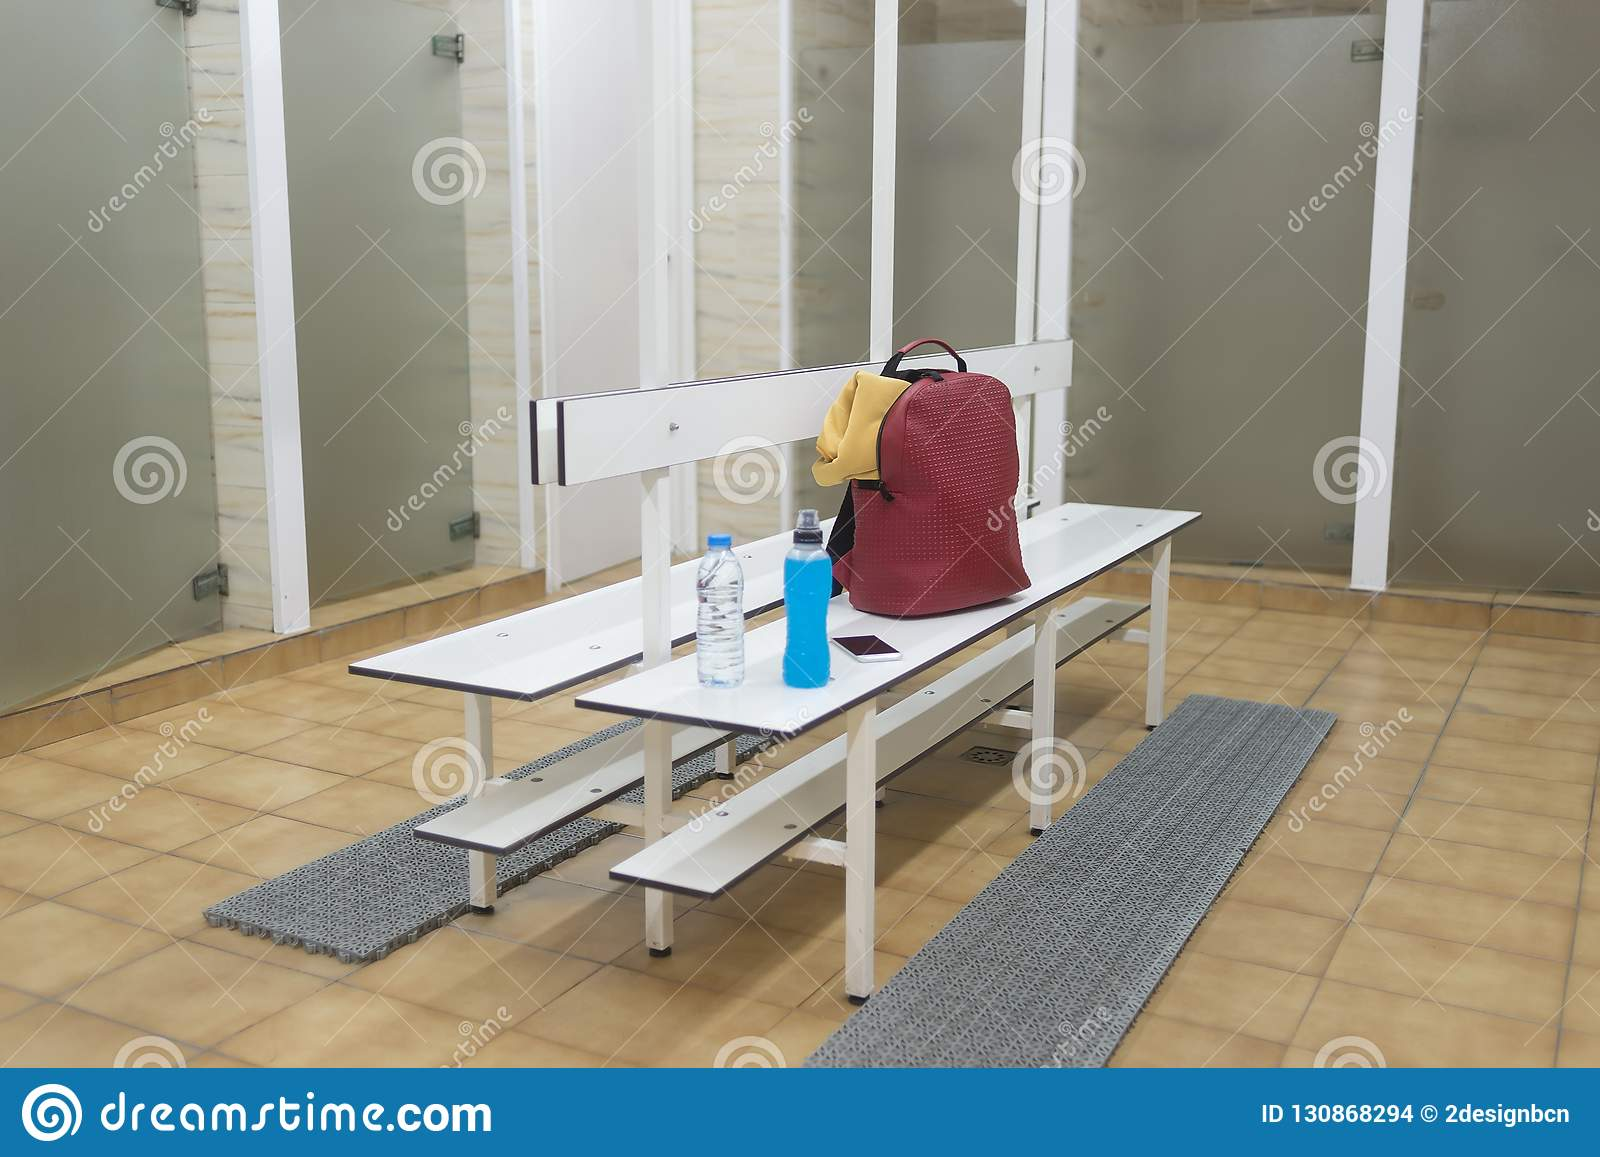 Stupendous Sports Supplies On A Wooden Bench In A Gym Locker Room Stock Beatyapartments Chair Design Images Beatyapartmentscom